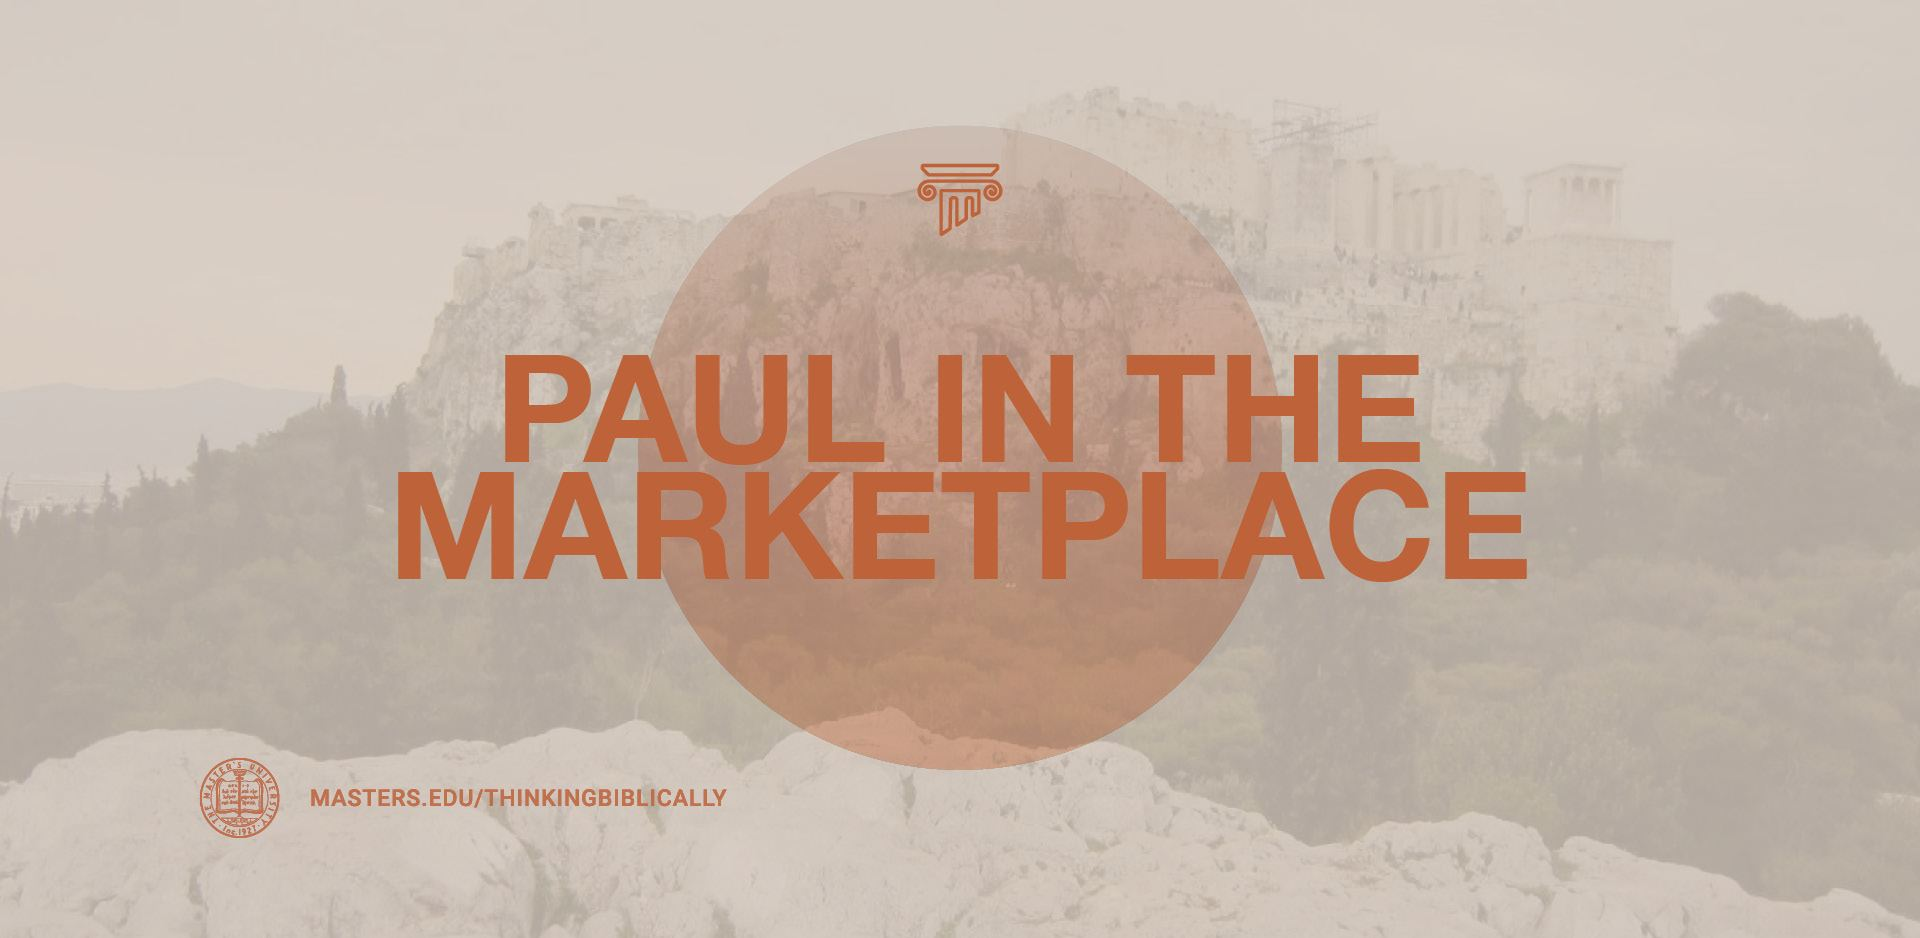 Paul in the Marketplace